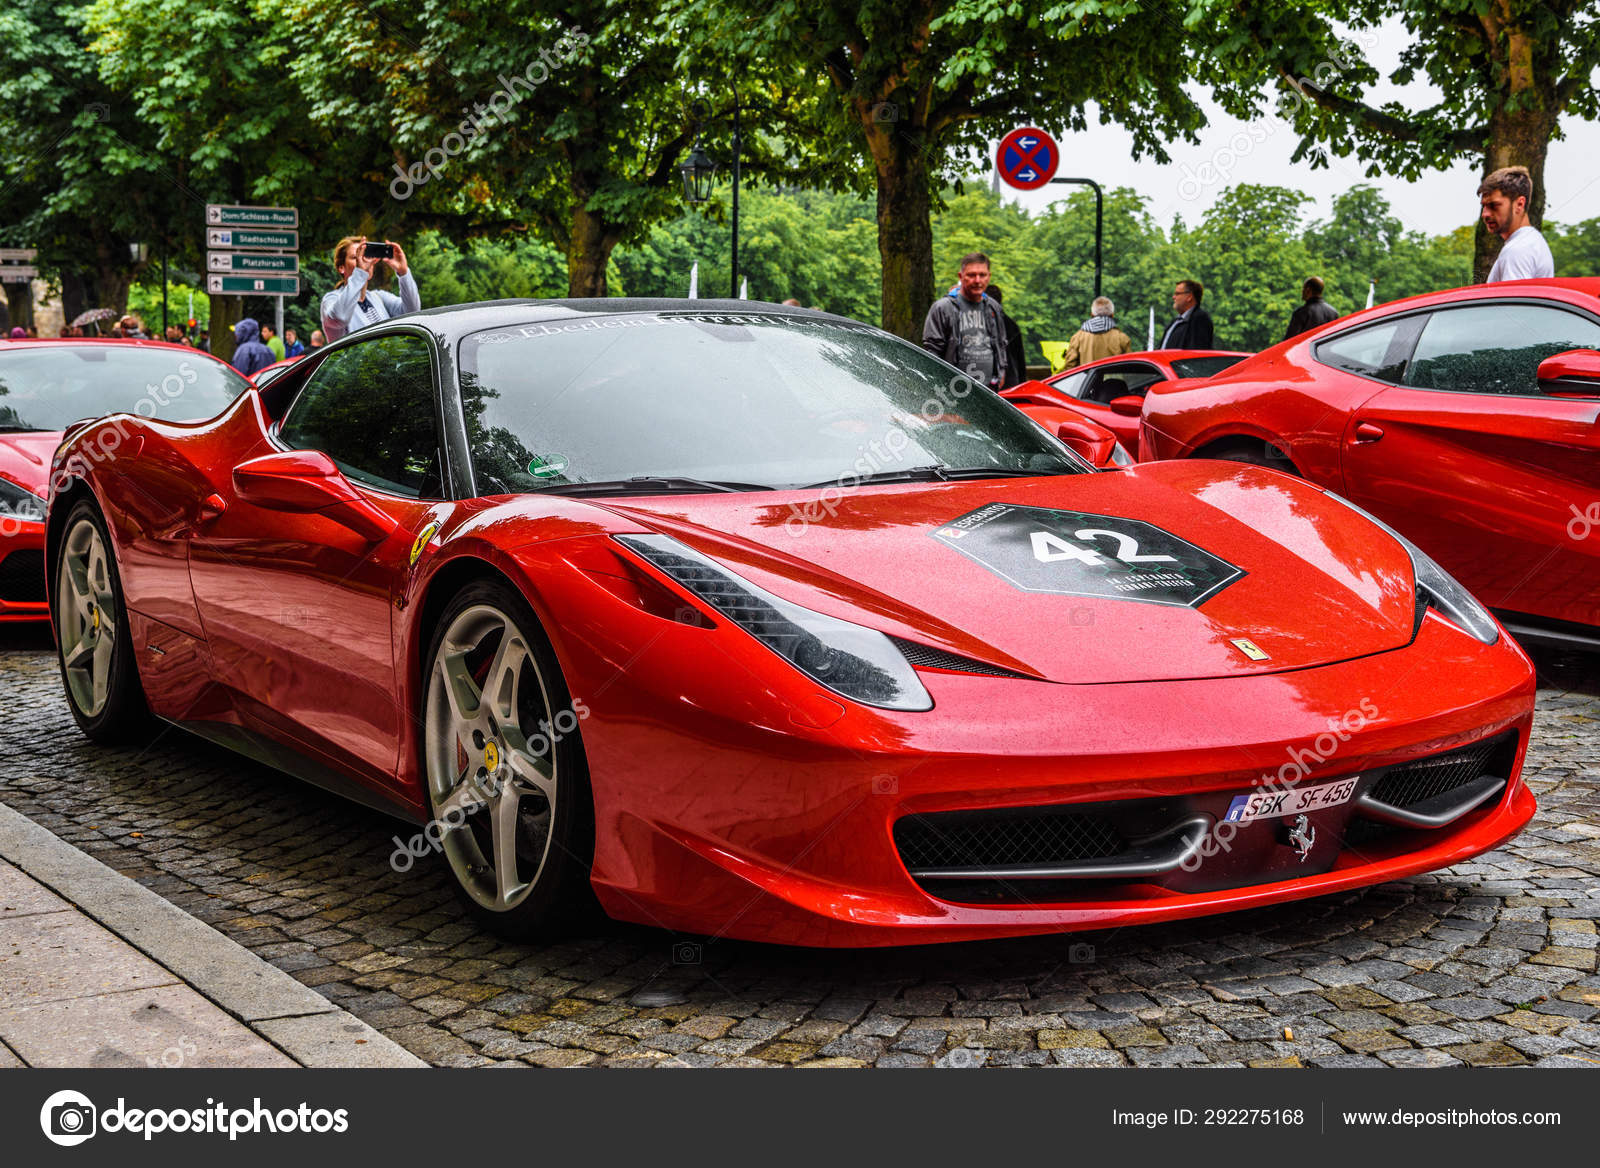 GERMANY, FULDA , JUL 2019 red FERRARI 458 SPIDER coupe was